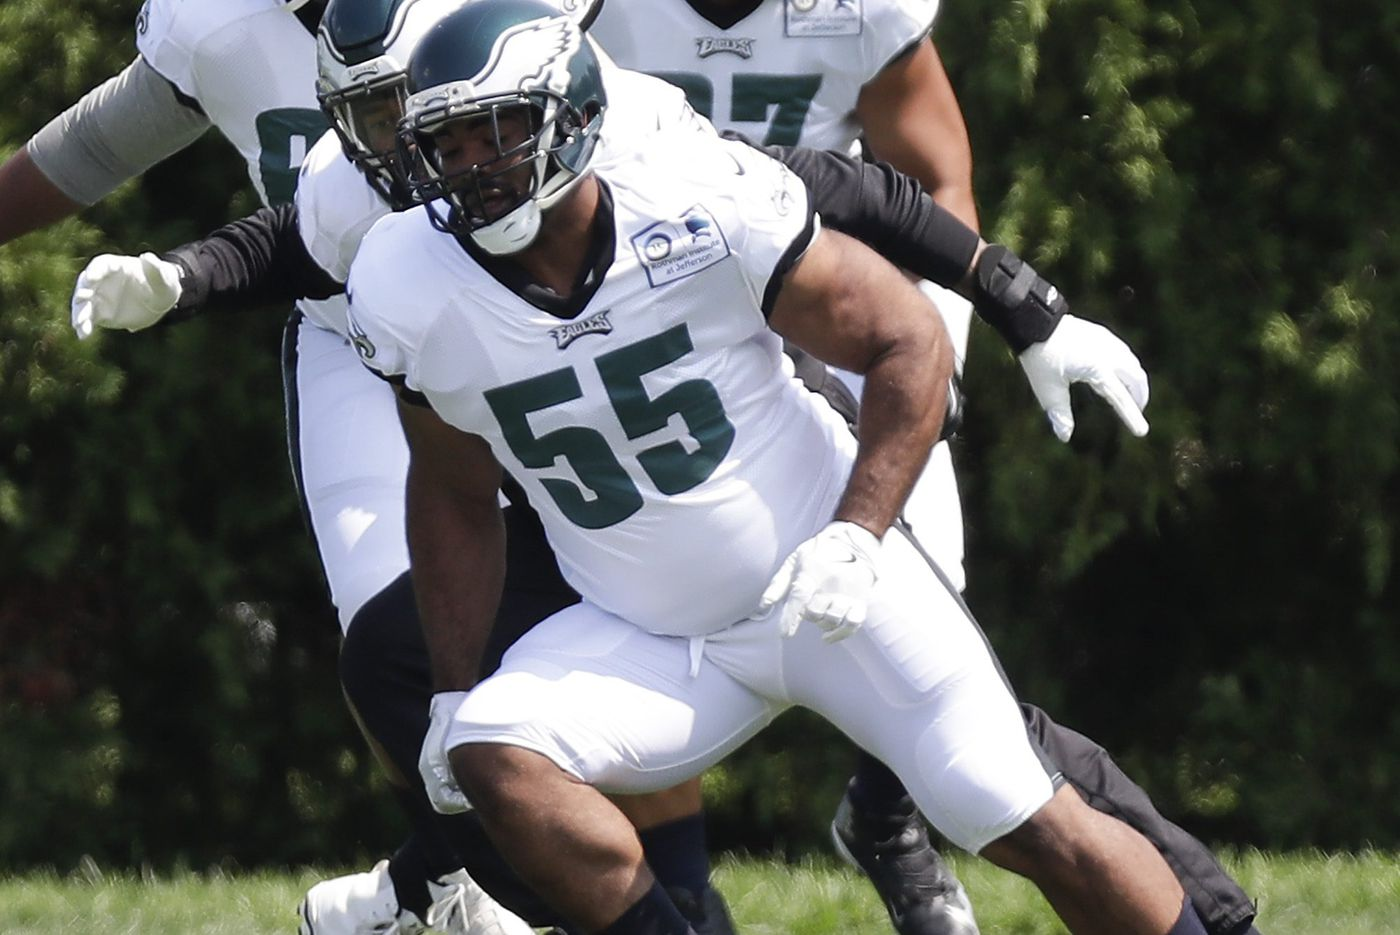 Eagles defense will be stronger with 'caged-up lion' Brandon Graham, but is he ready?